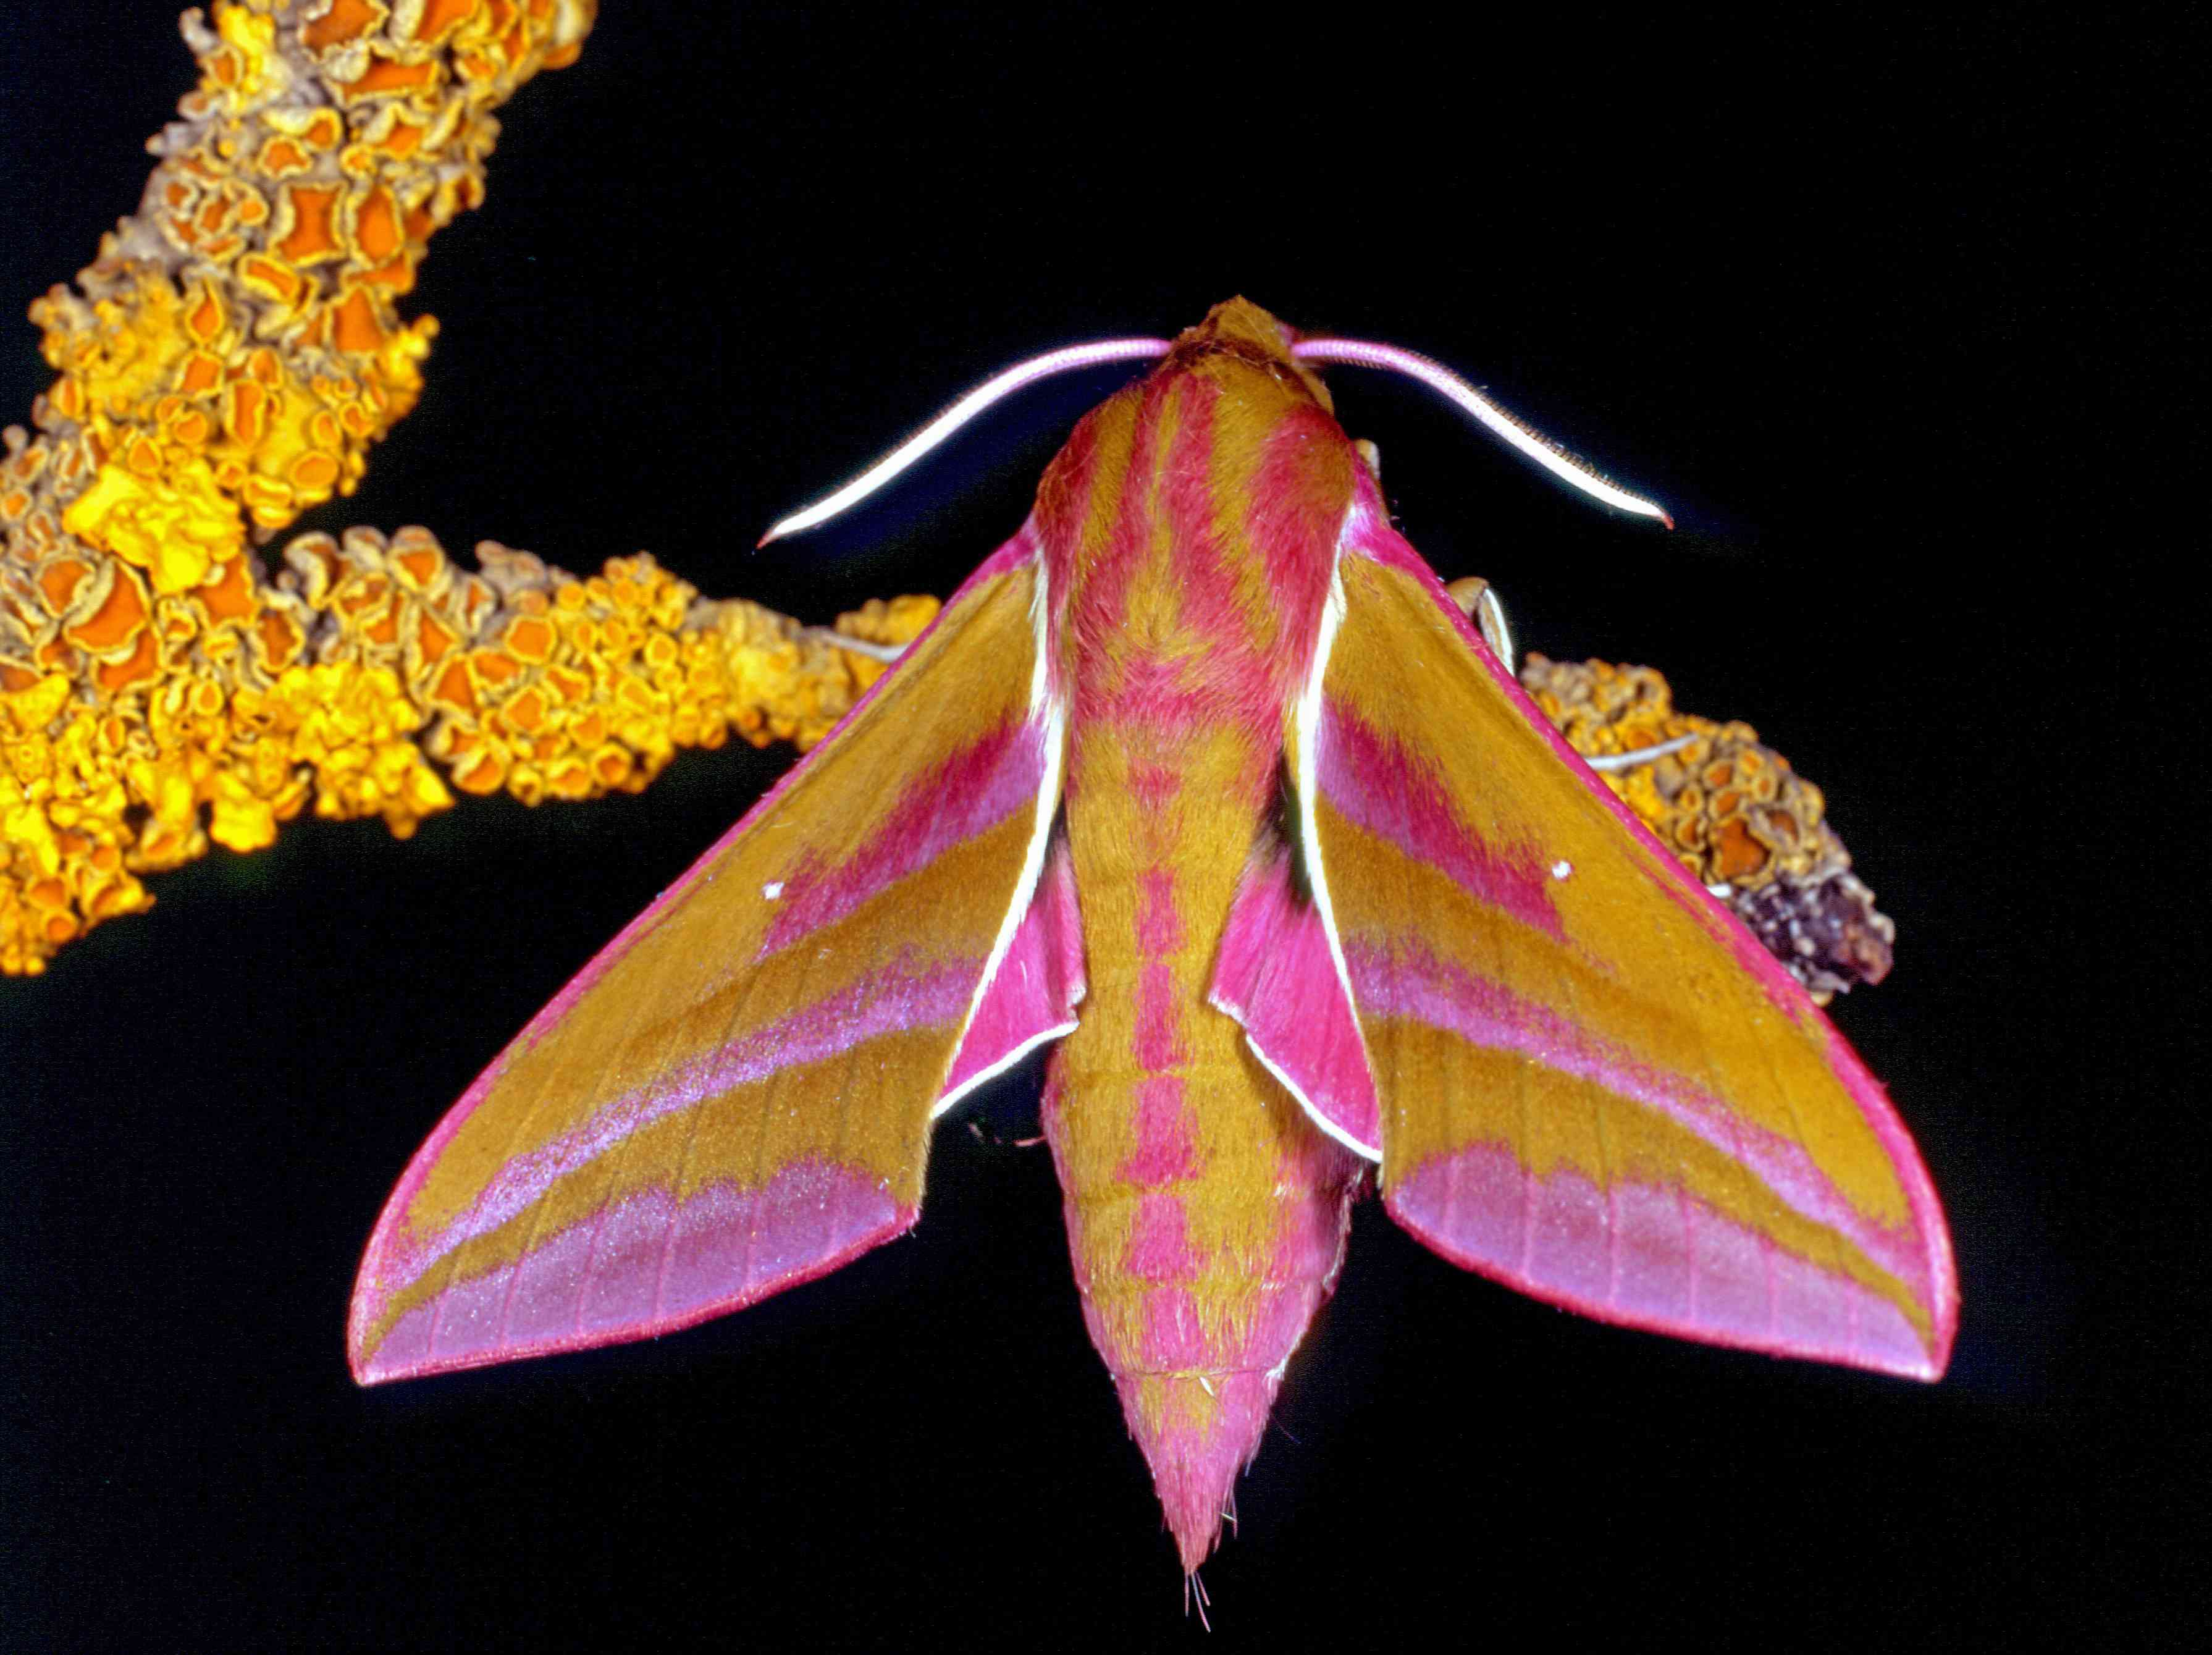 A yellow and pink moth sits on a twig in front of a black background